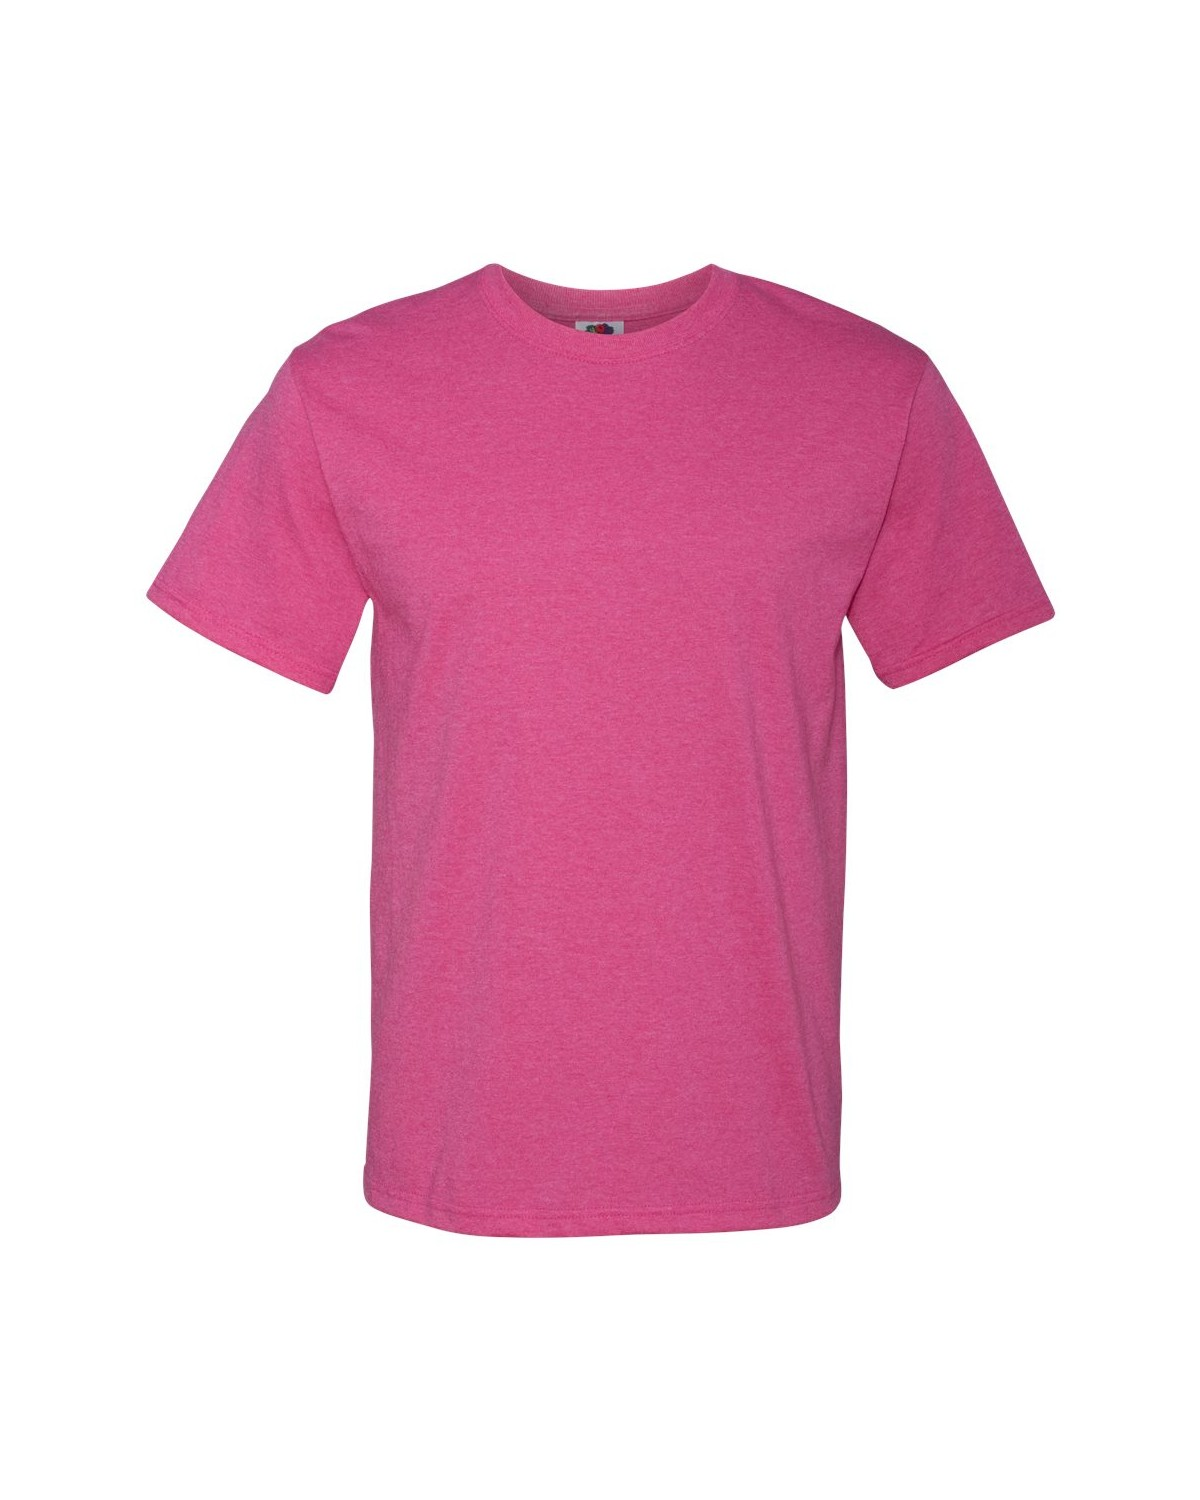 3930R Fruit of the Loom Retro Heather Pink